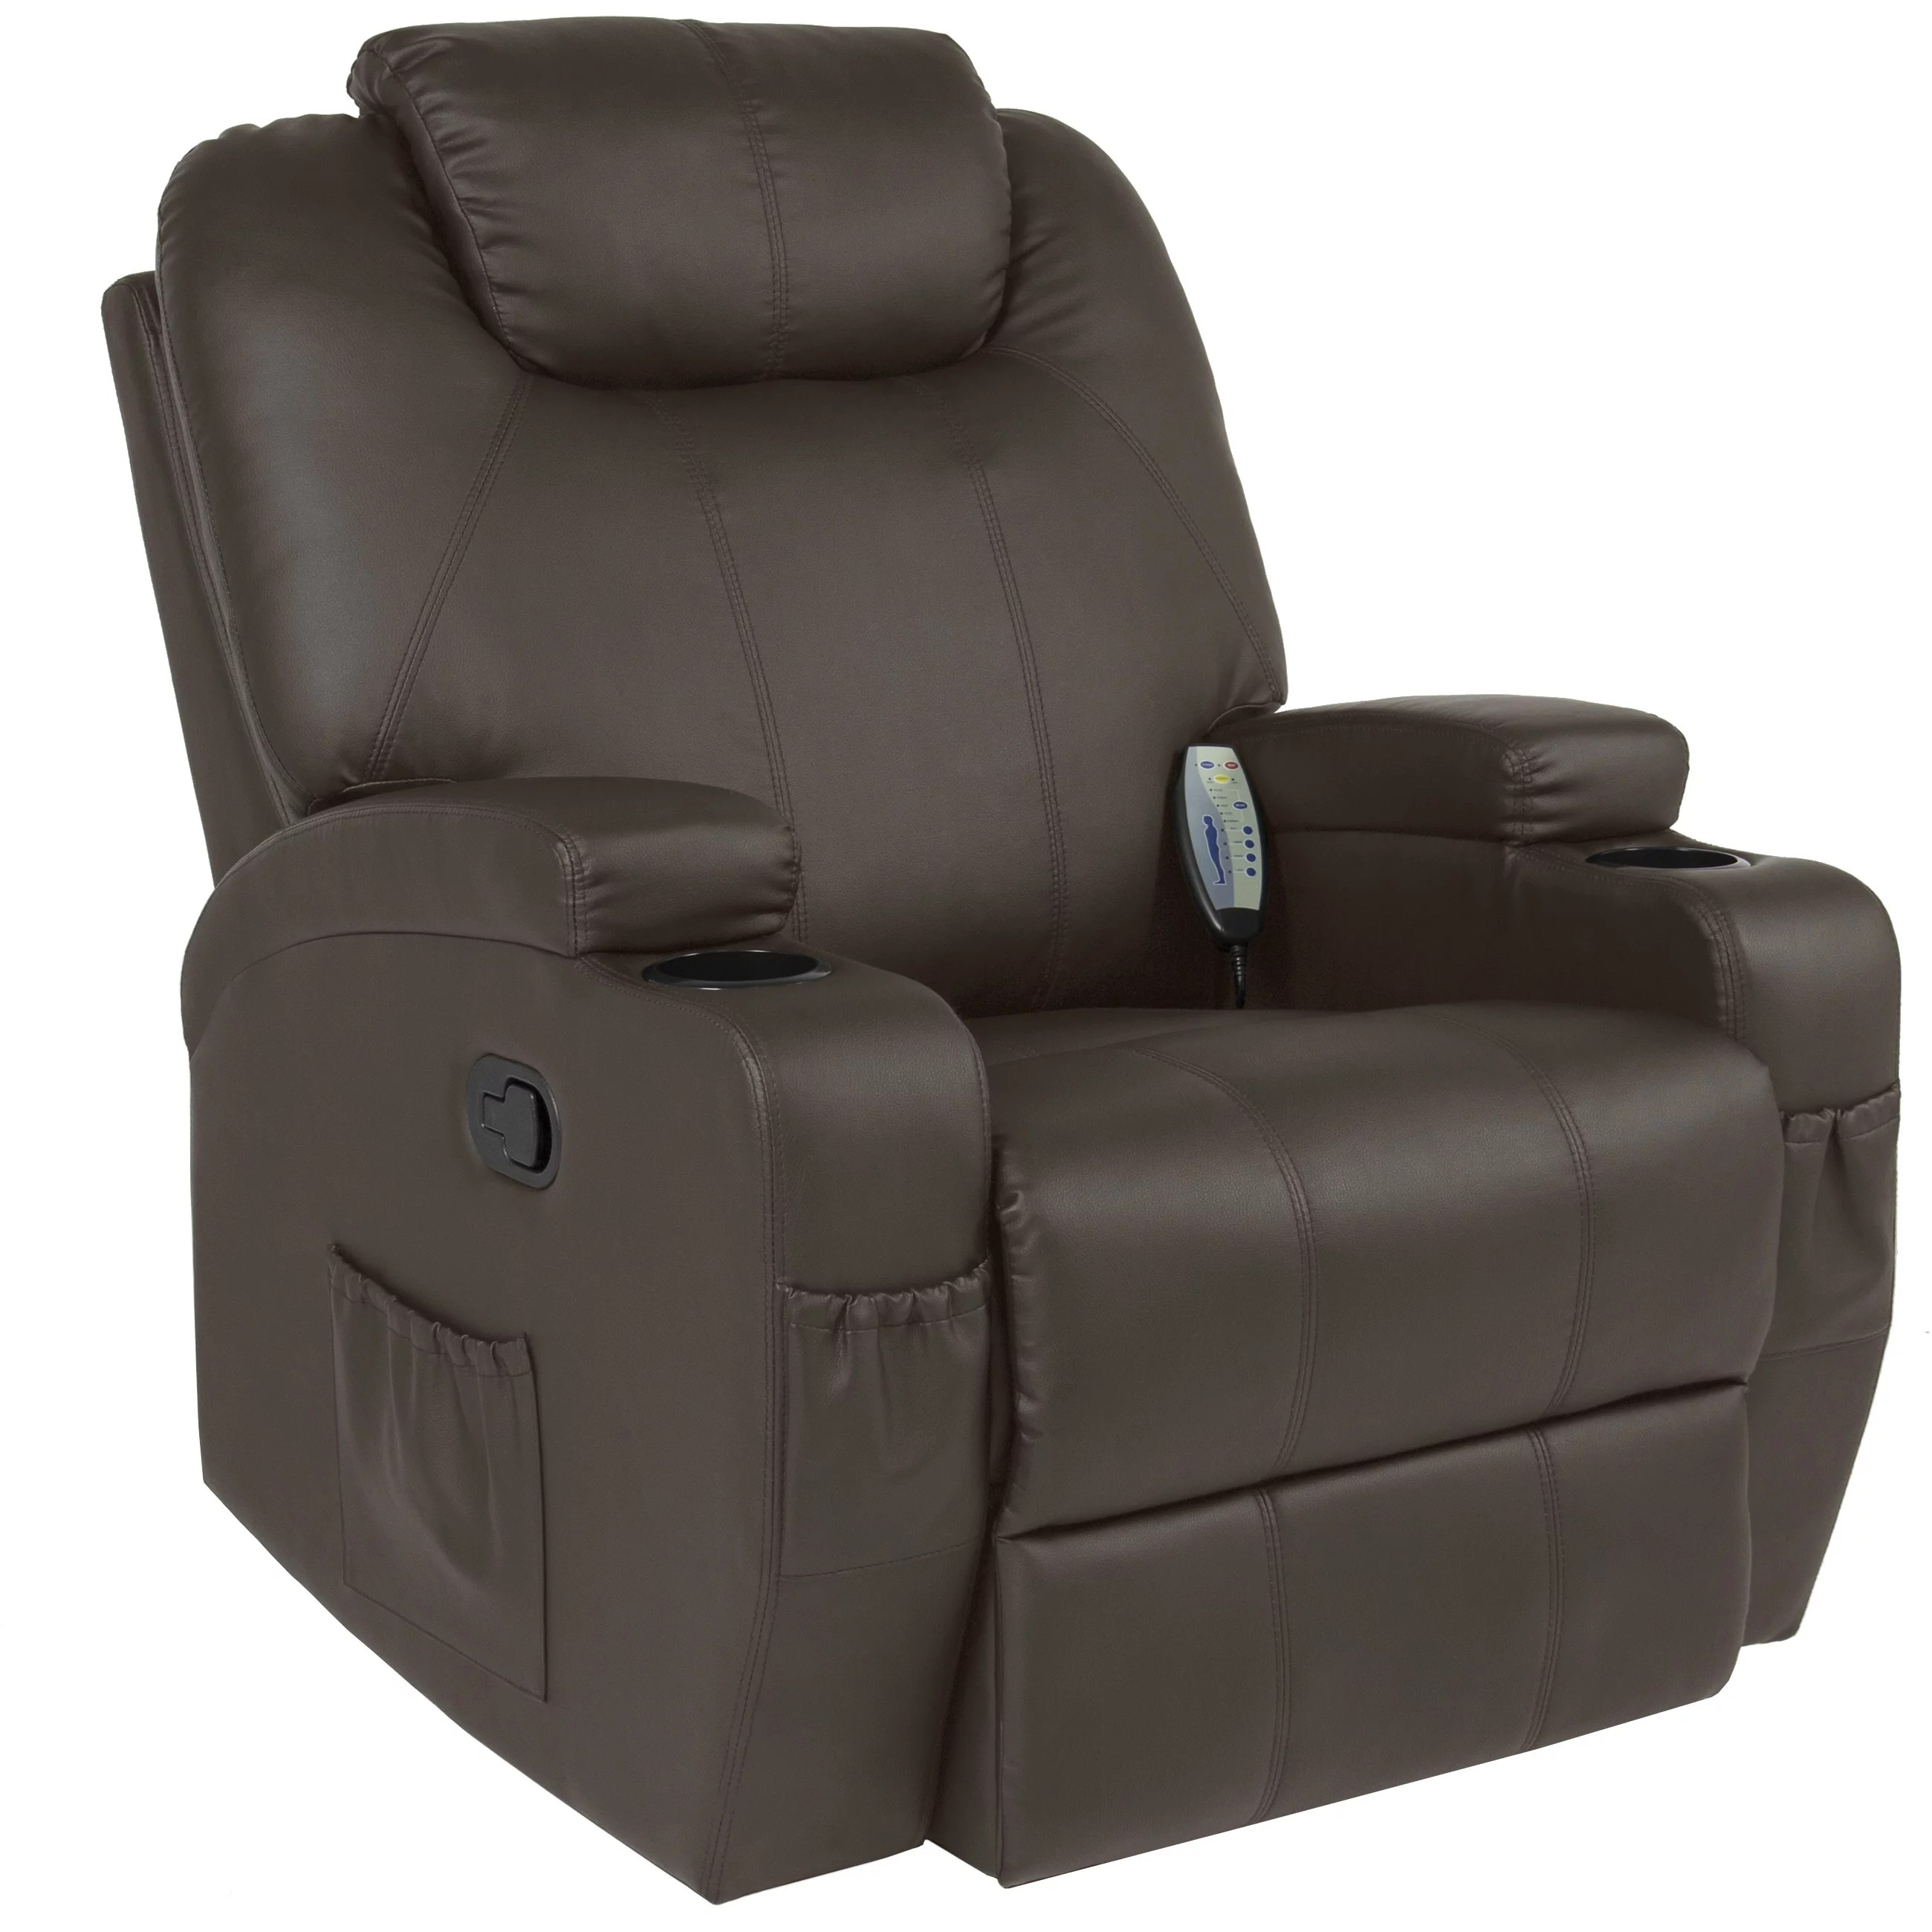 Electric Recliner Leather Chairs Best Choice Products Executive Pu Leather Swivel Electric Massage Recliner Chair W Remote Control 5 Heat Vibration Modes 2 Cup Holders 4 Pockets